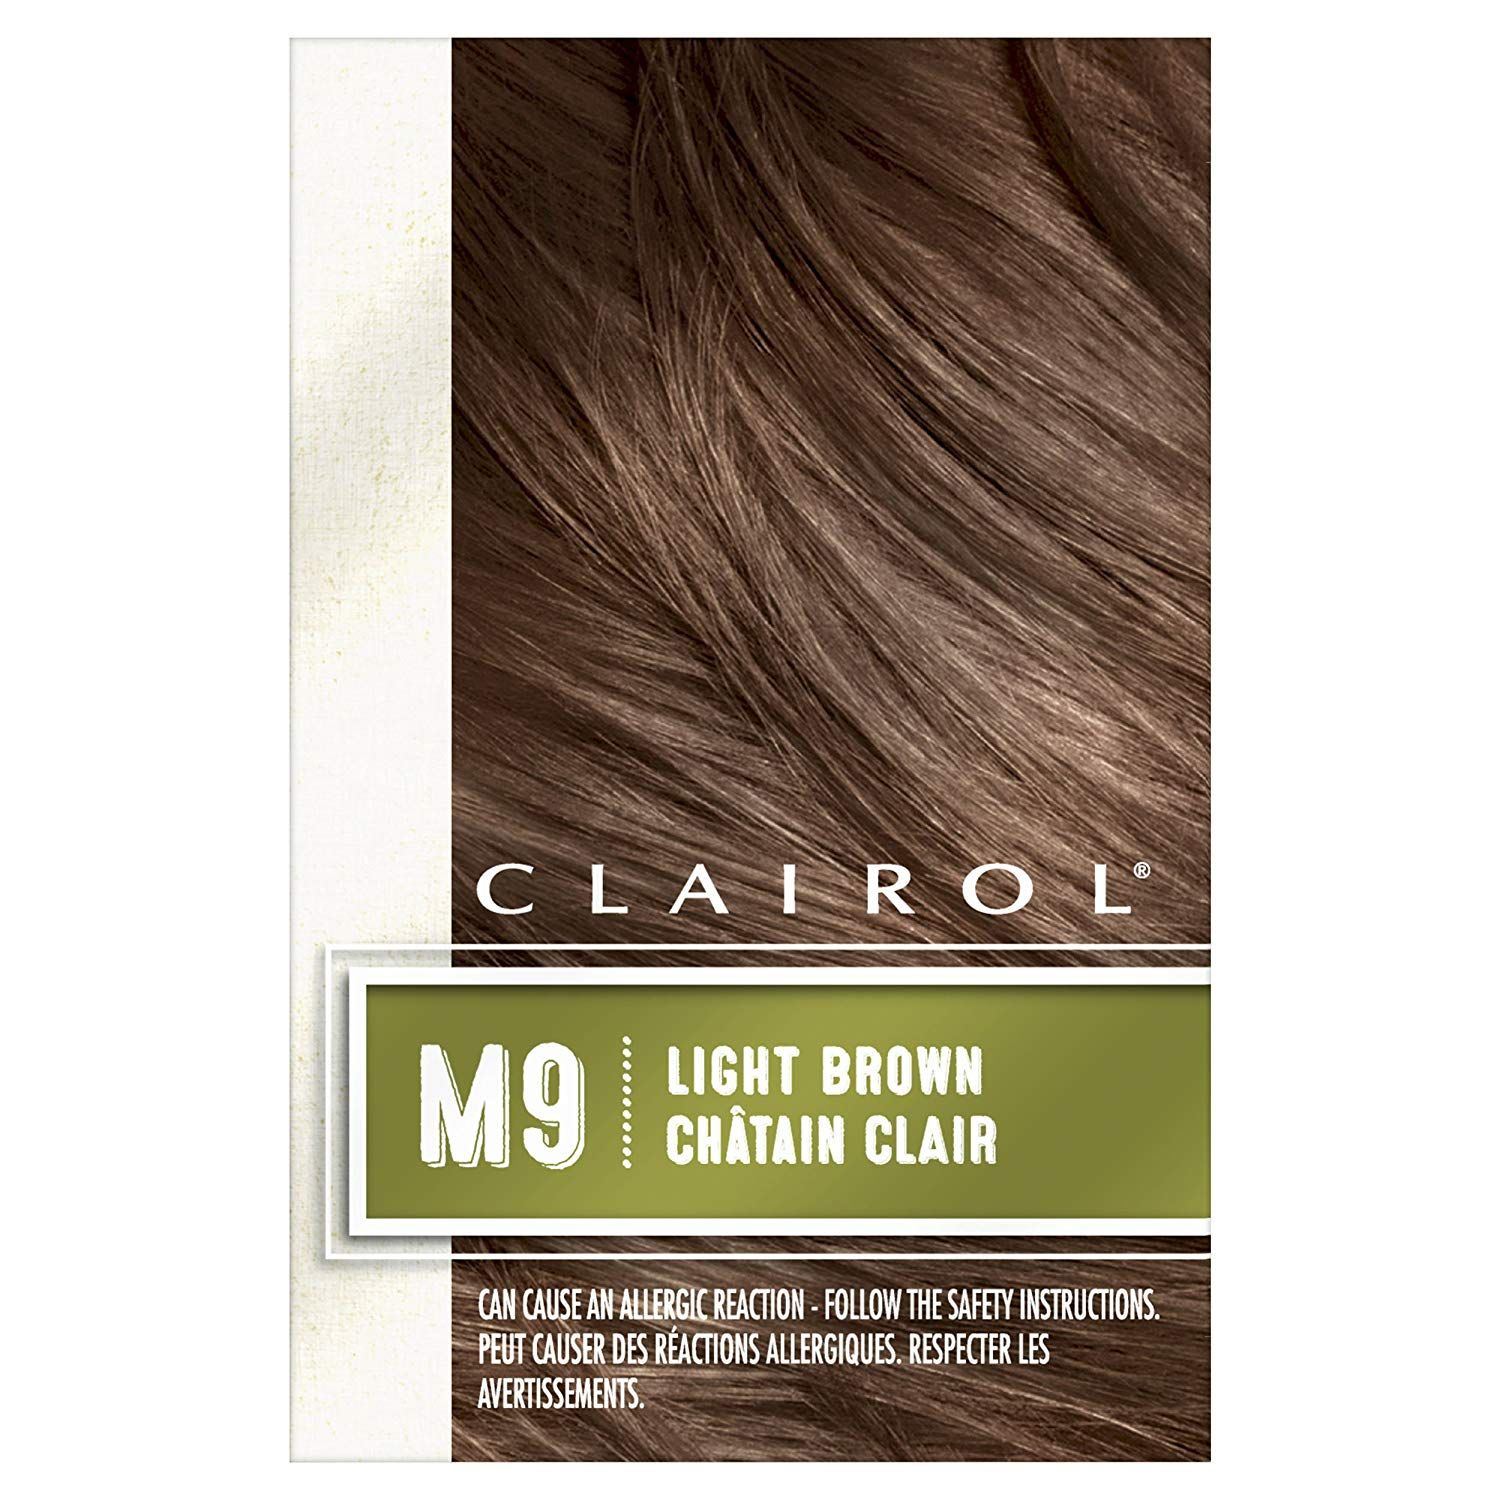 Clairol Natural Instincts Hair Color For Men M9 Light Brown 1 Kit Pack Of 3 Packaging M Clairol Natural Instincts Beauty Hair Color Semi Permanent Hair Dye